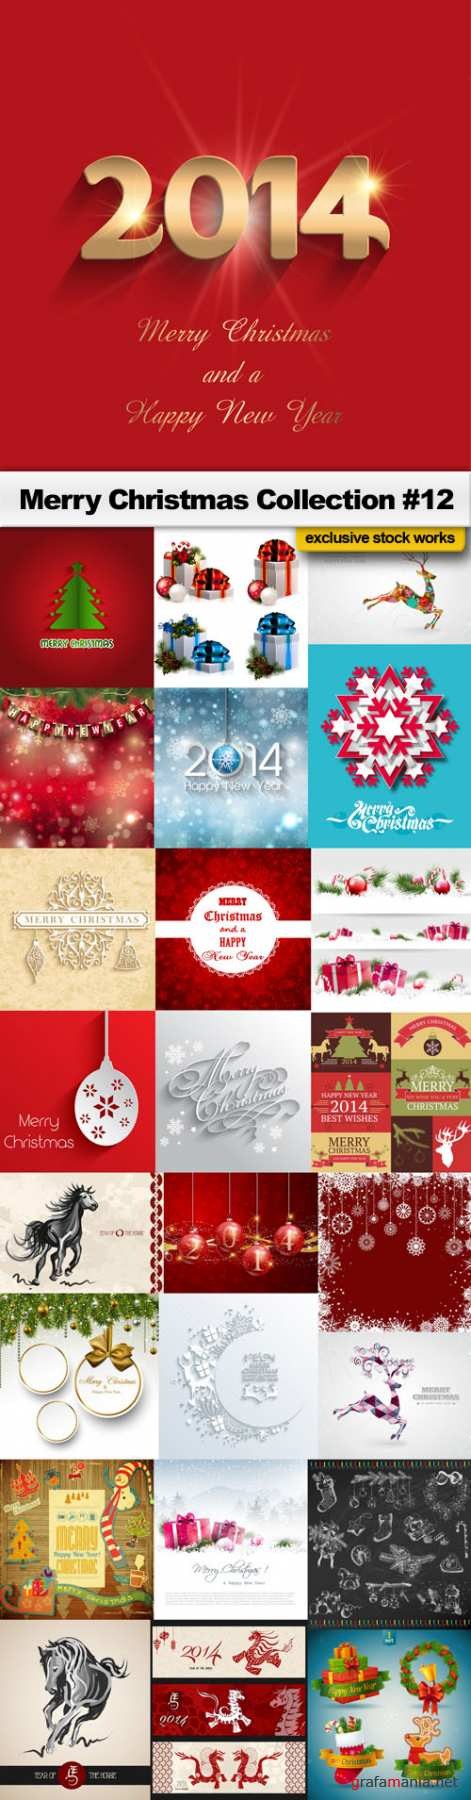 Merry Christmas Collection #12 - 25 EPS